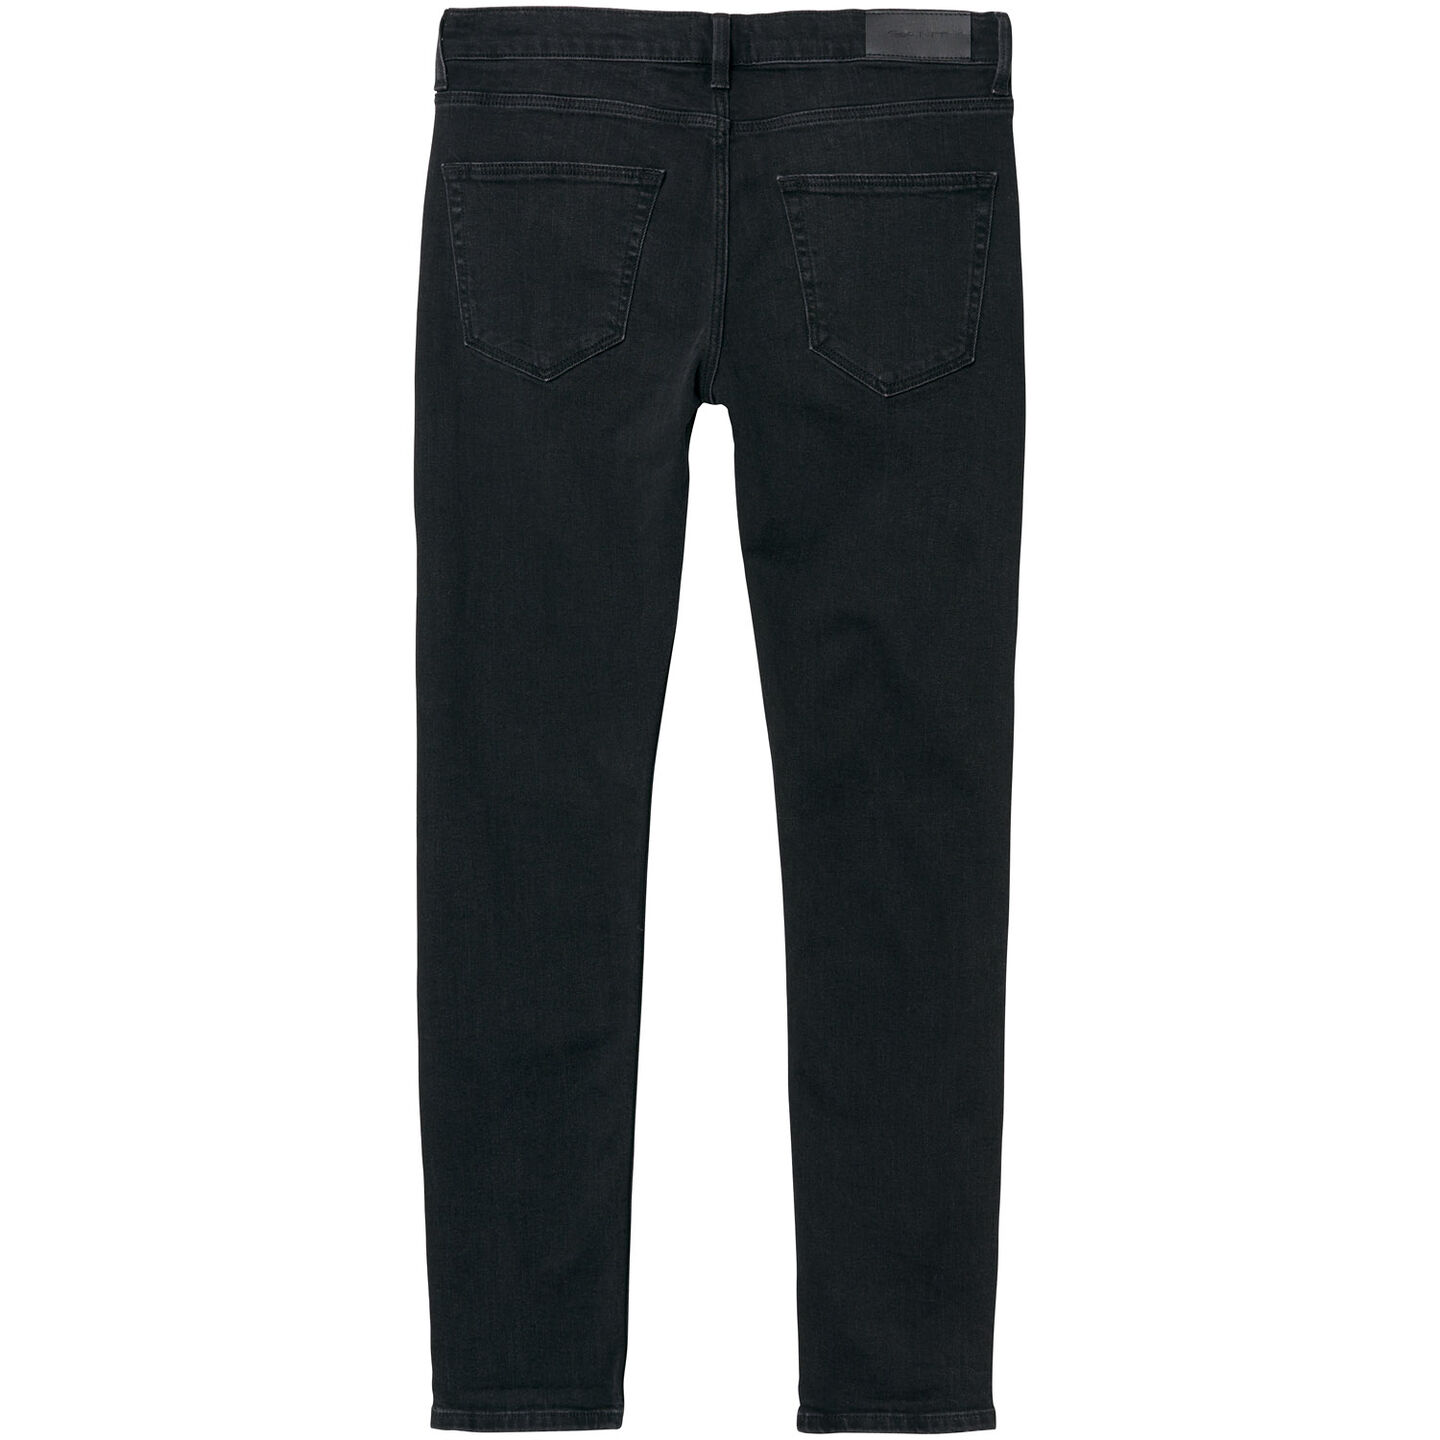 Teen Boys Slim Fit Jeans